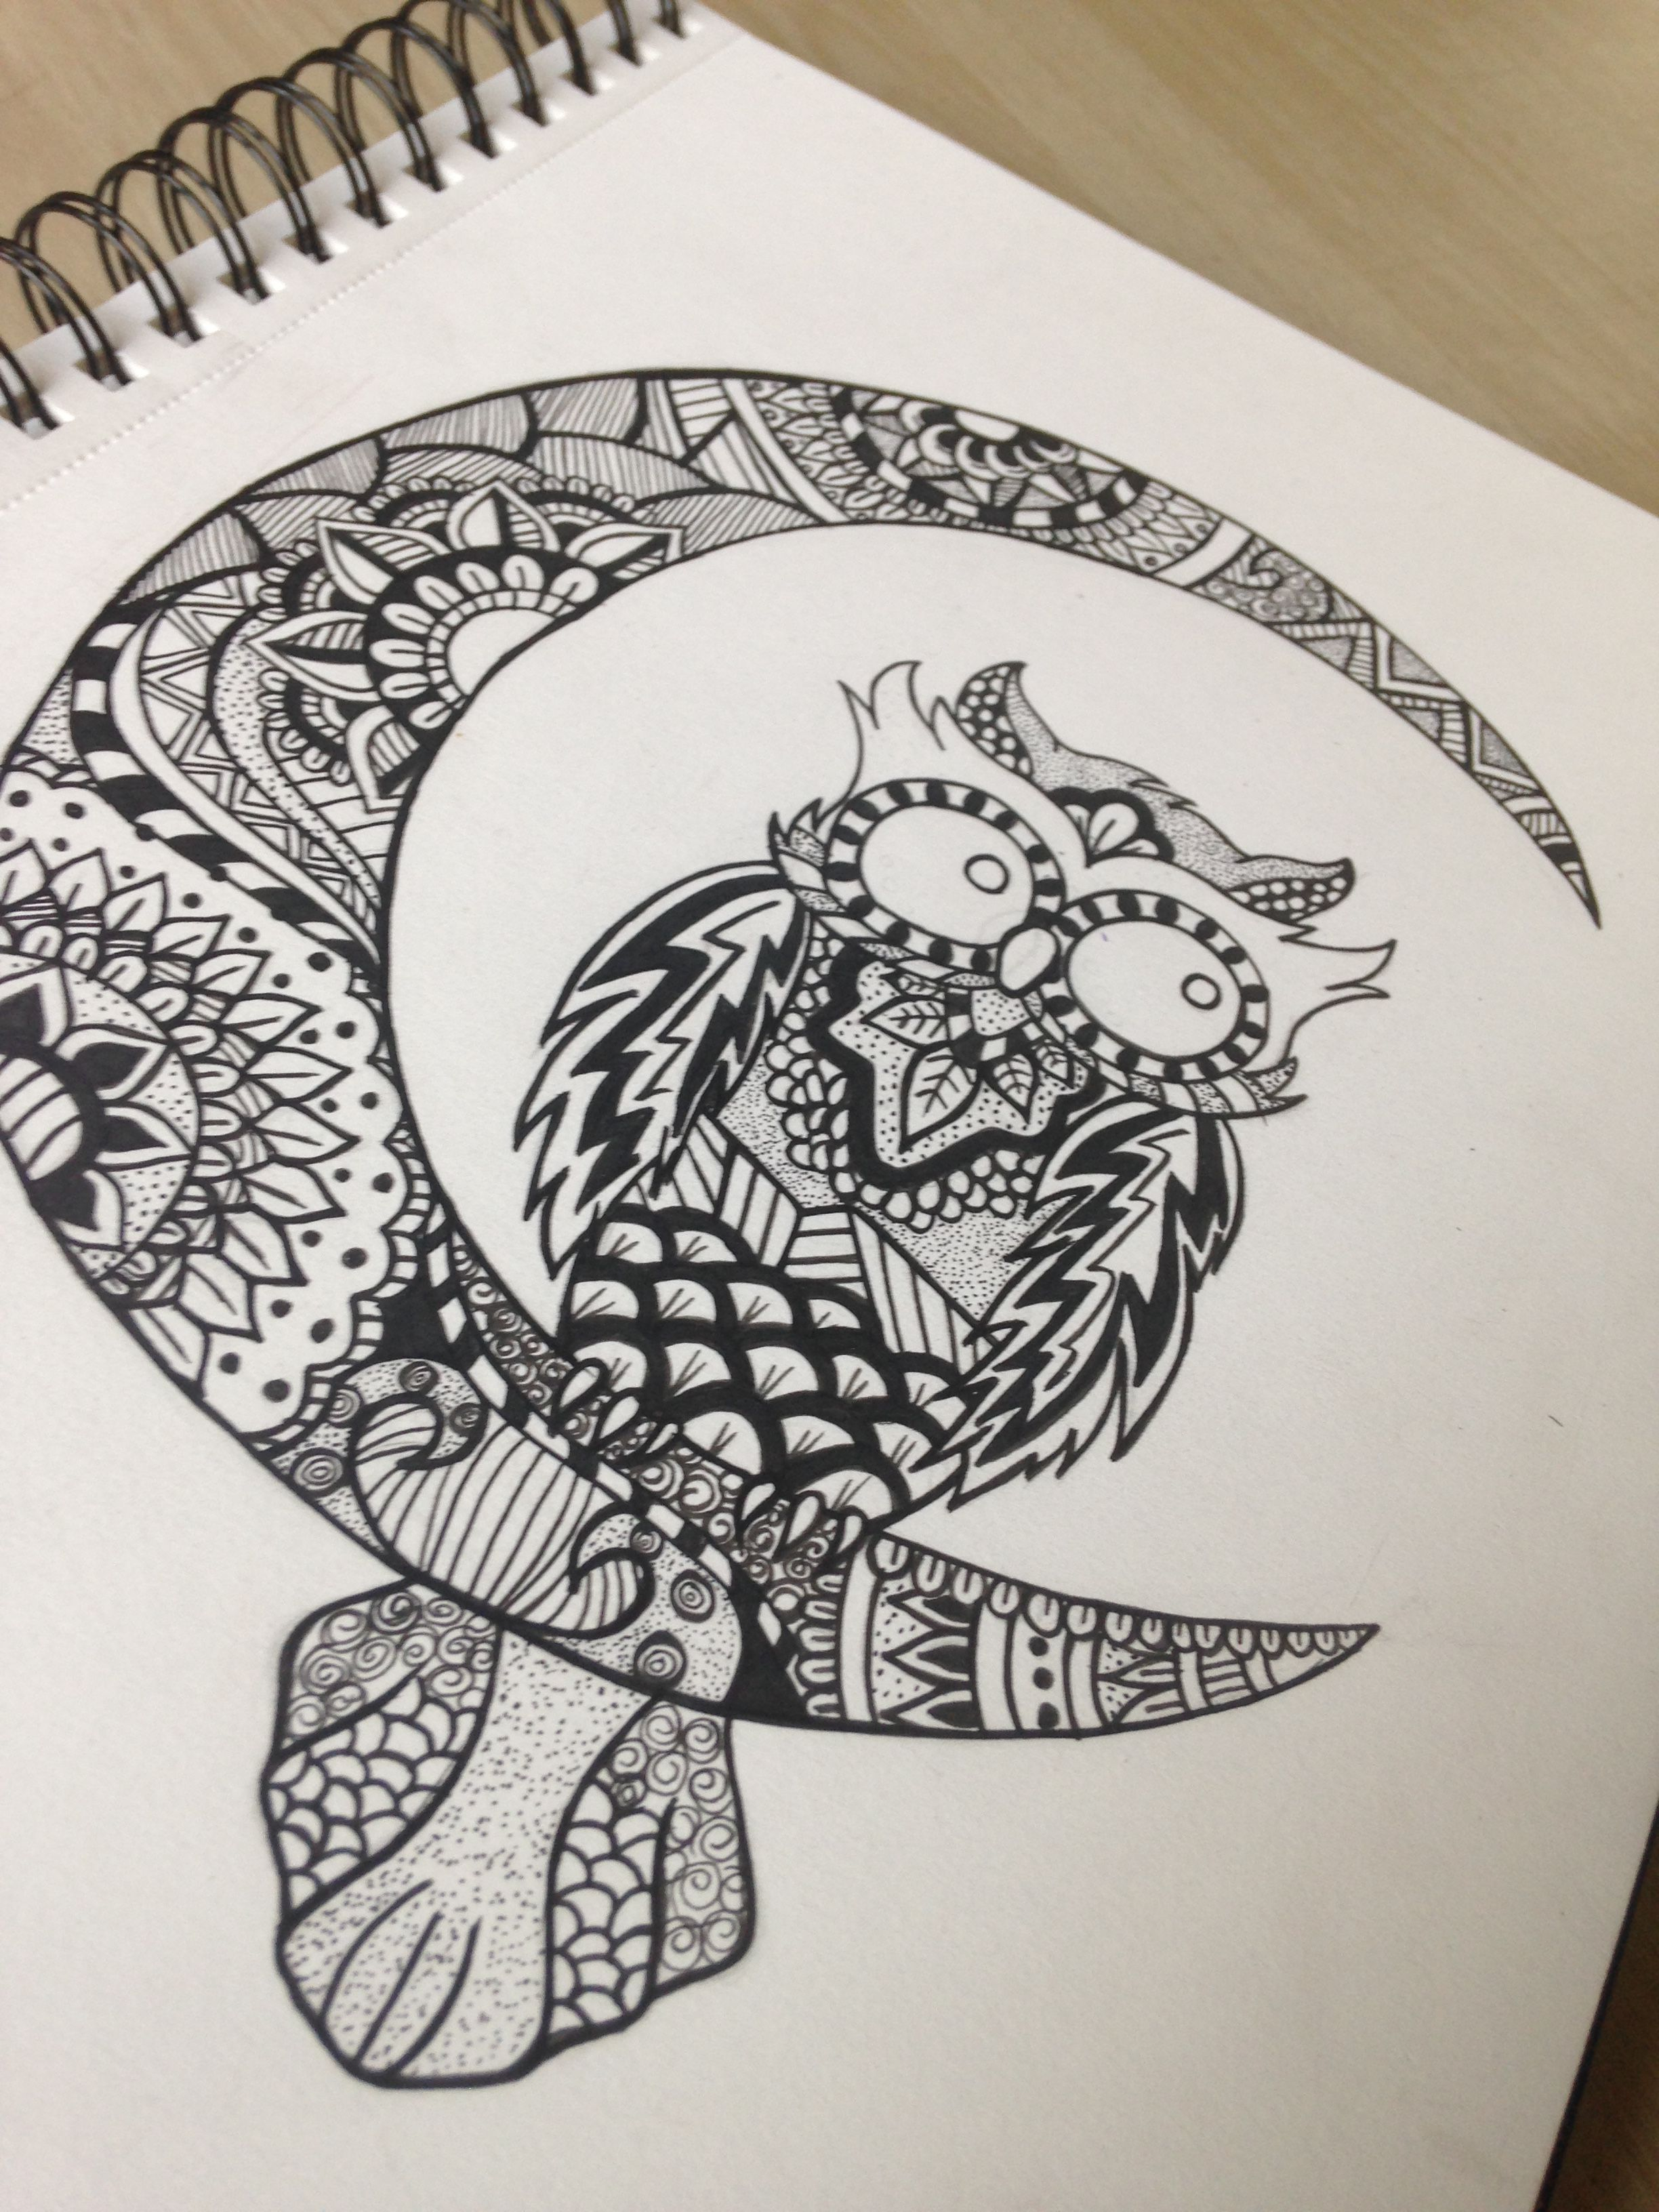 Mandala/zentangle owl drawn by me